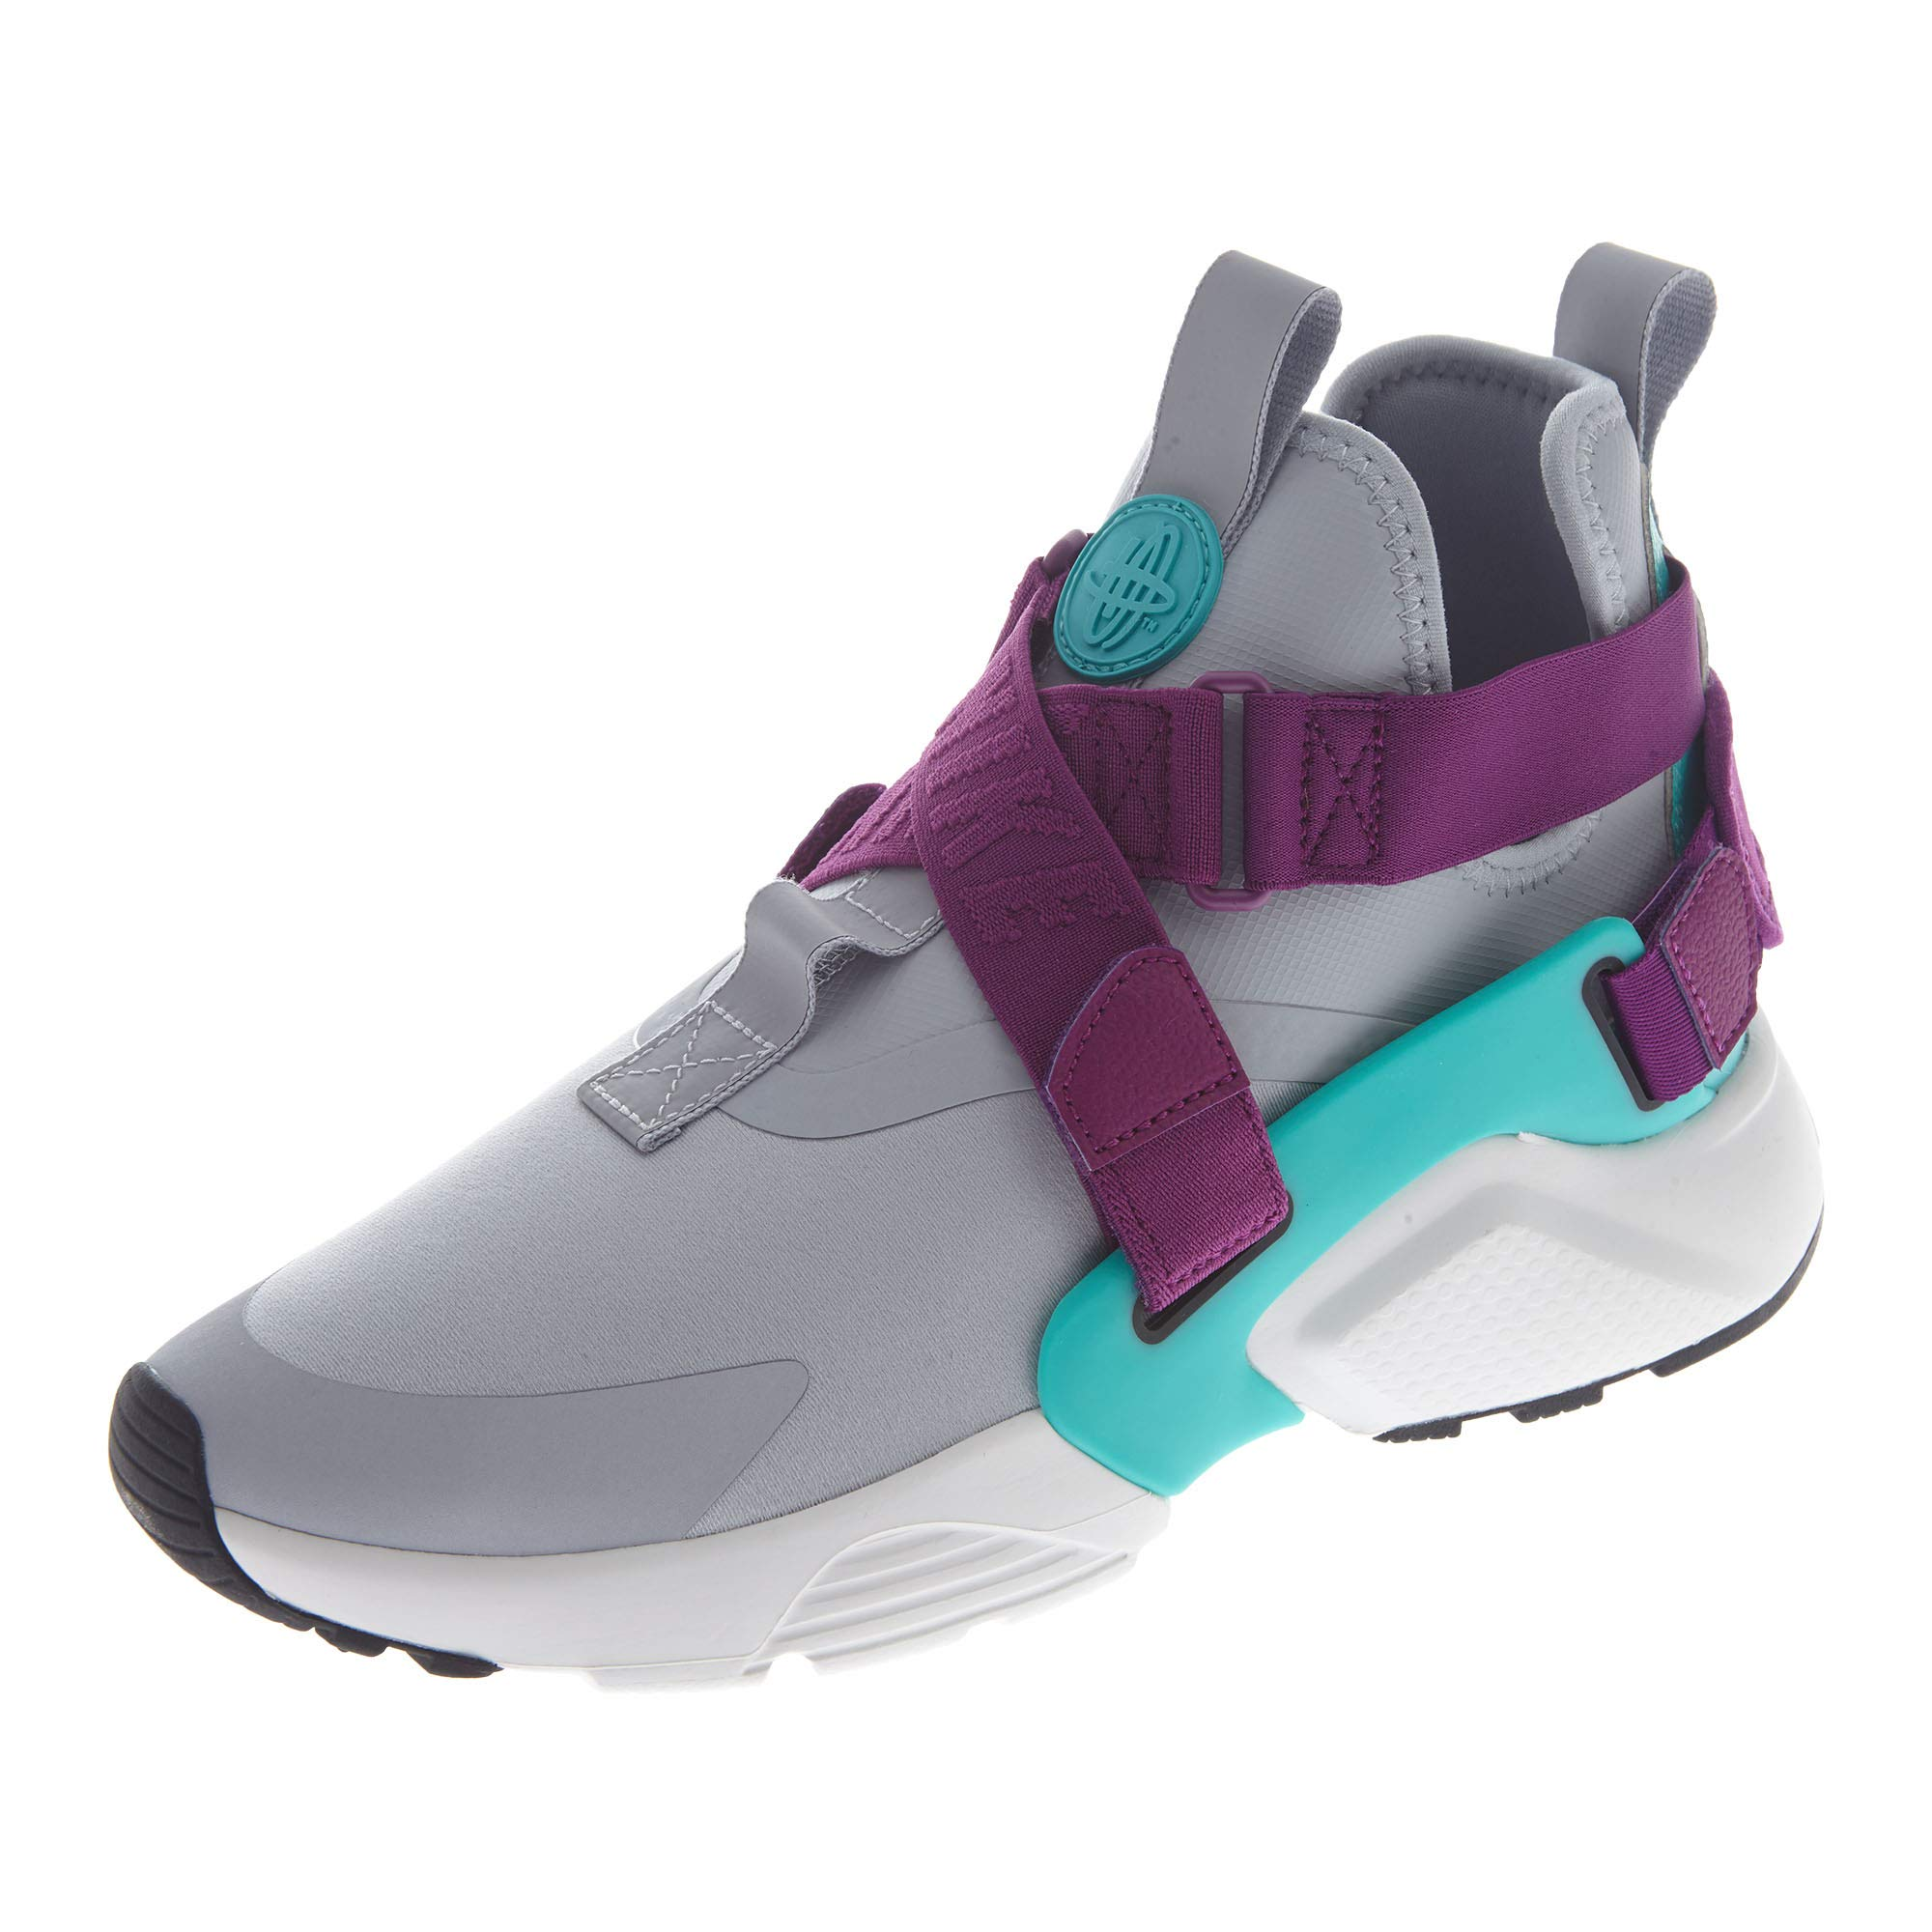 930f4d6dbf9a Galleon - NIKE Air Huarache City Womens Style  AH6787-006 Size  5.5